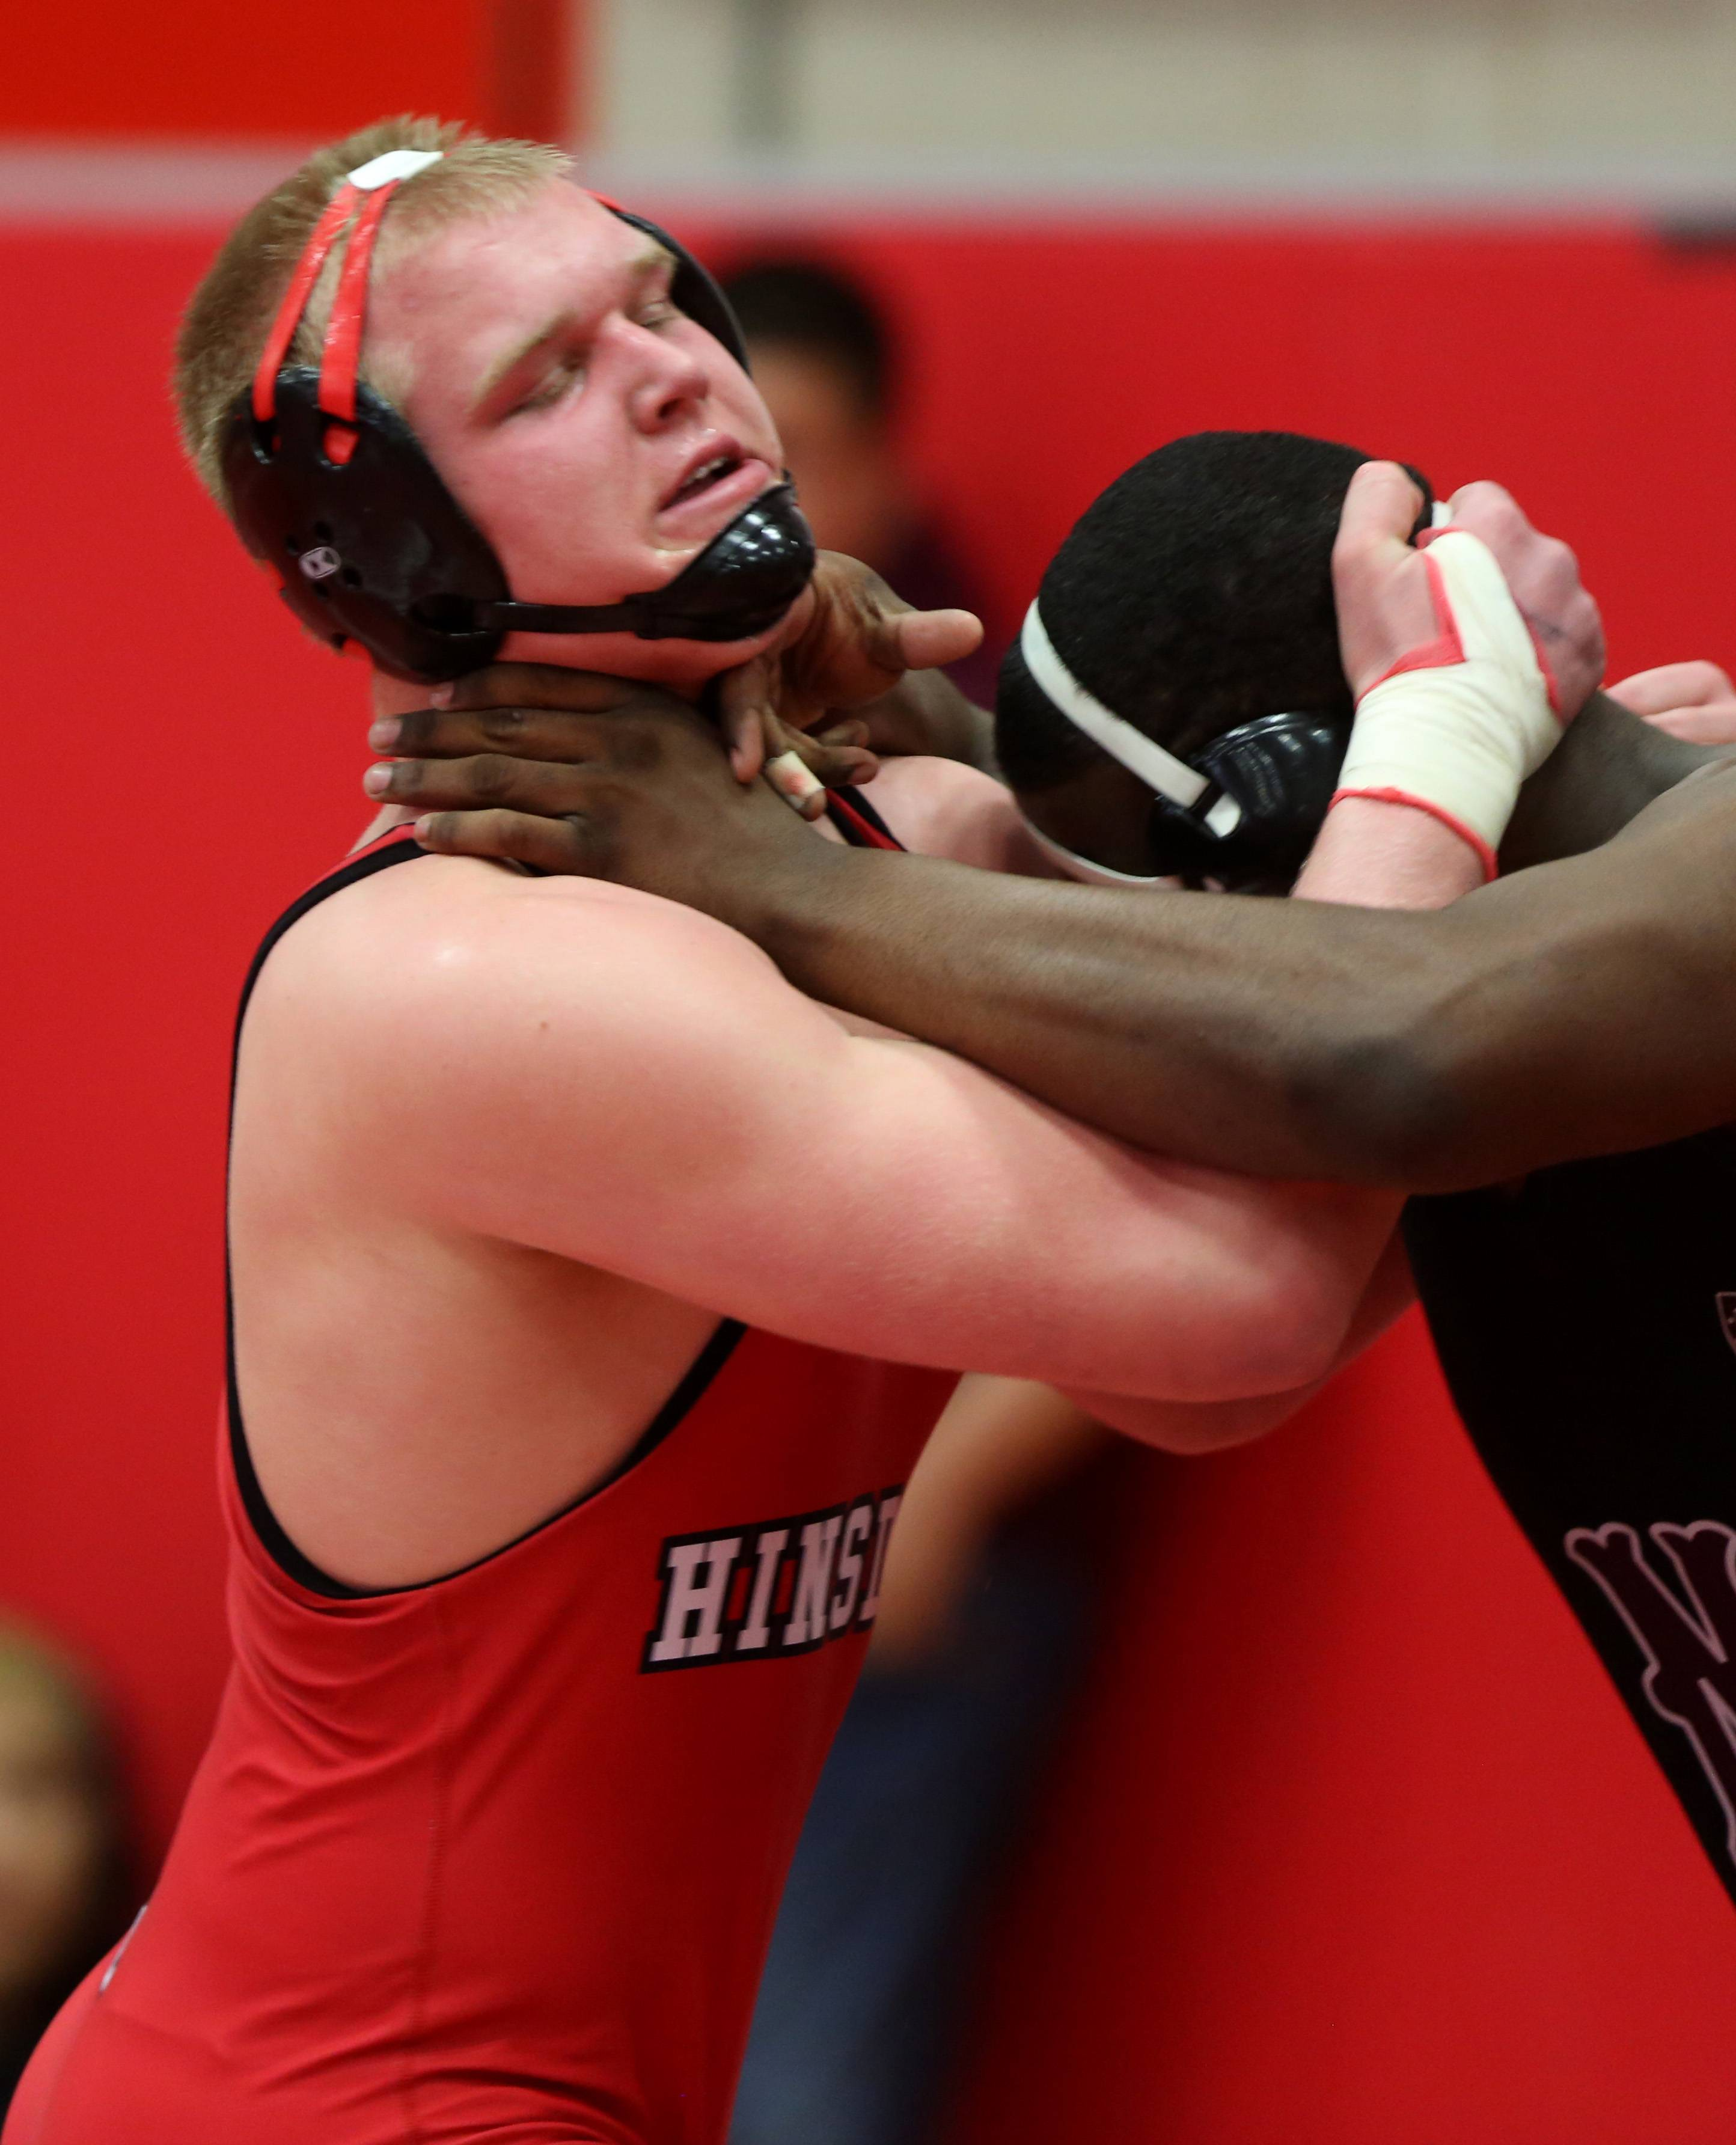 Hinsdale Central's Matt Allen defeats Morton's Kevion Anderson 6-4, in the 220 pound class of the 3A Hinsdale Central individual wrestling sectional semifinals.